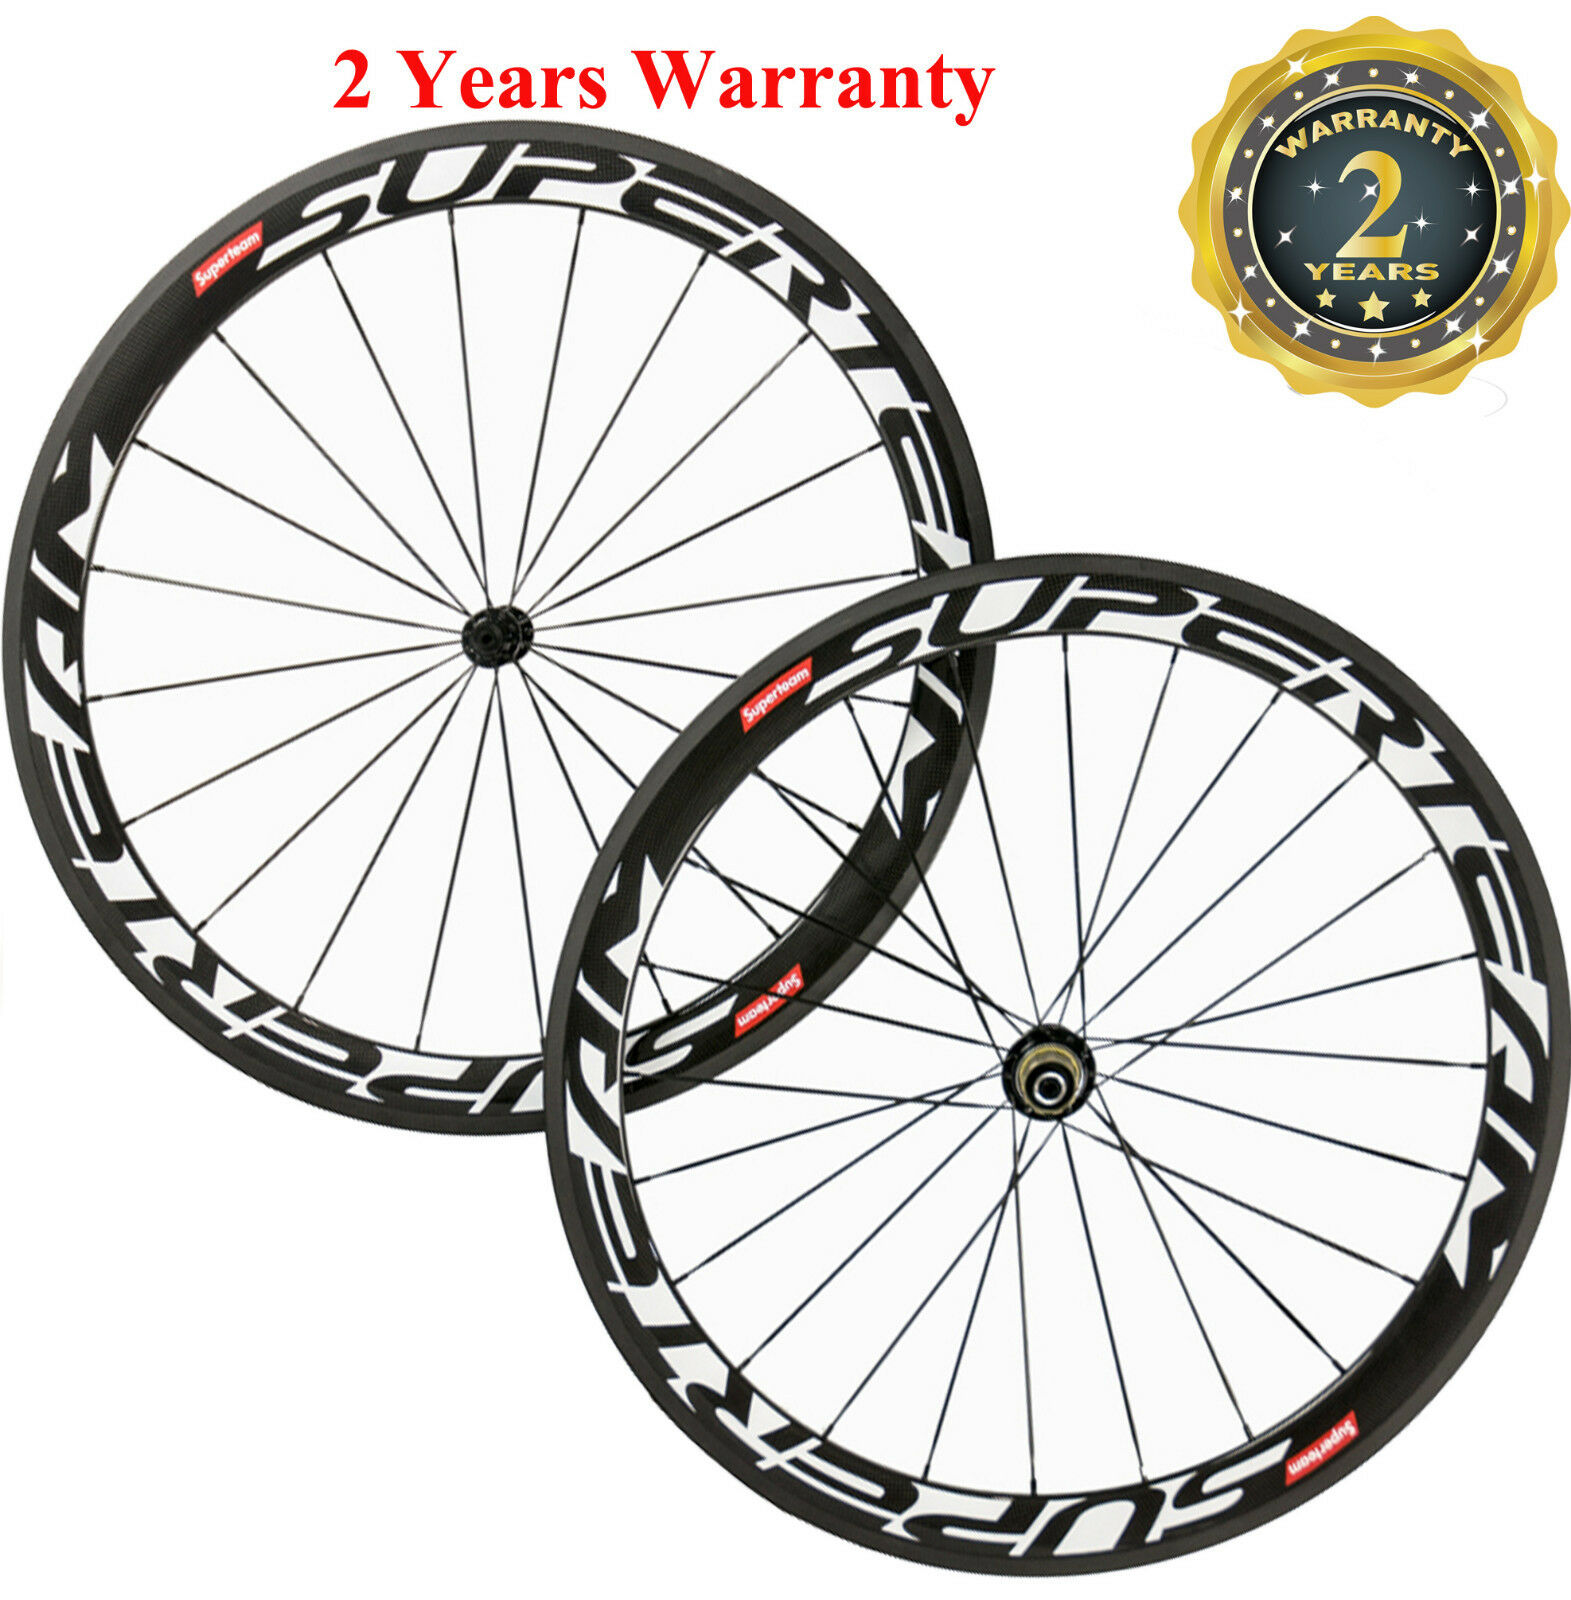 Superteam 700C 50mm Clincher Road  Bike Wheels Carbon Wheelset 3k Matte Shimano  take up to 70% off